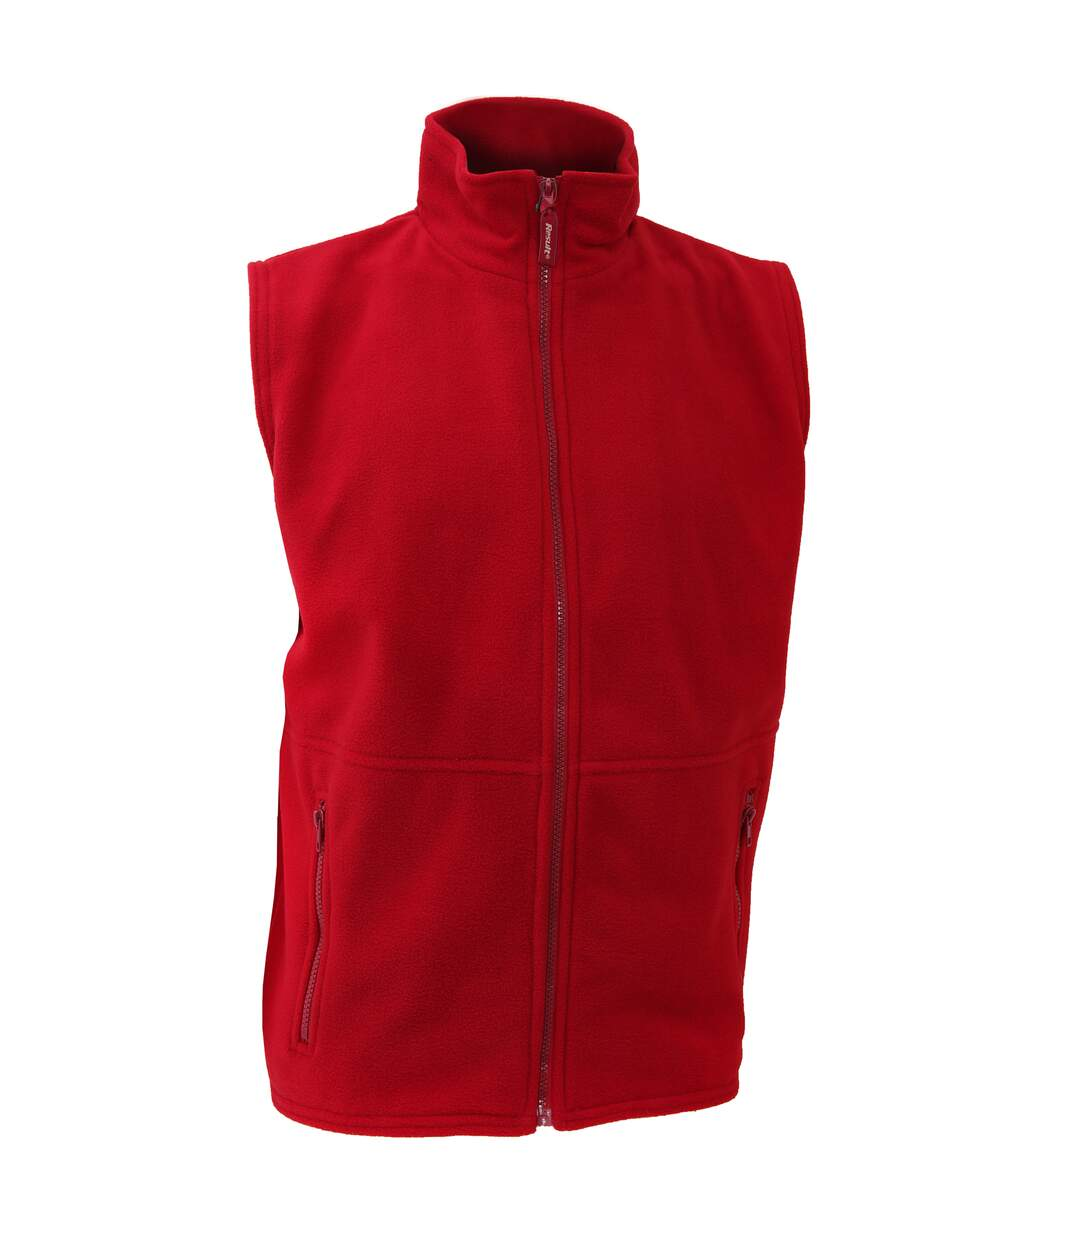 Result Mens Active Anti Pilling Fleece Bodywarmer Jacket (Red) - UTBC923